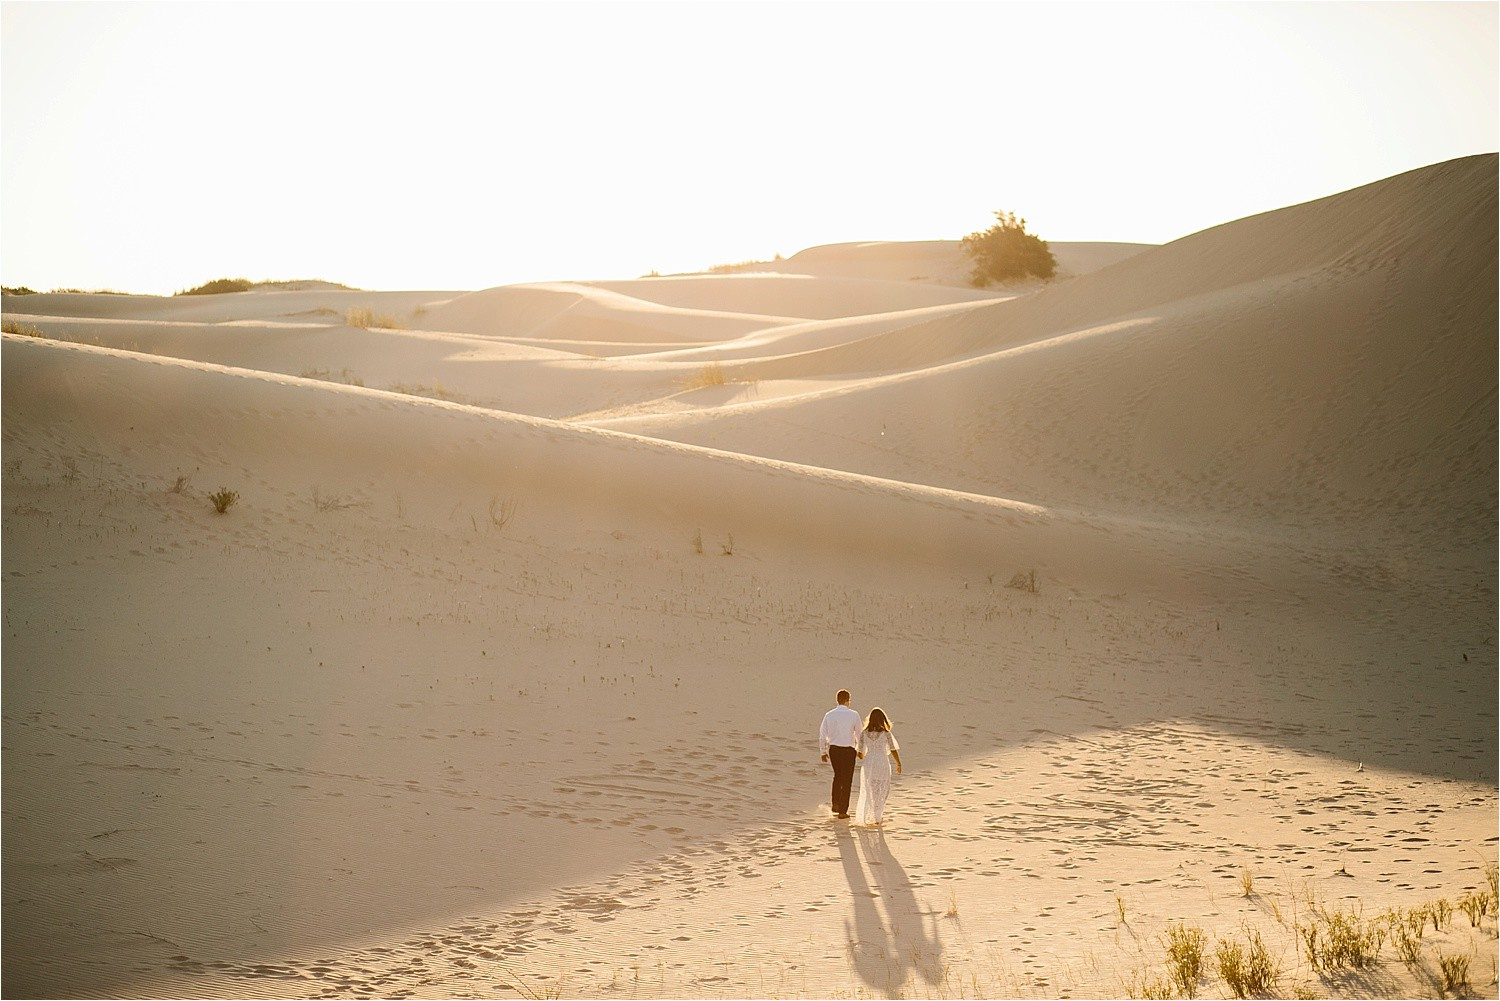 Lauren + Jacob __ a monahans sand dunes engagement session at sunrise by North Texas Wedding Photographer, Rachel Meagan Photography __ 25